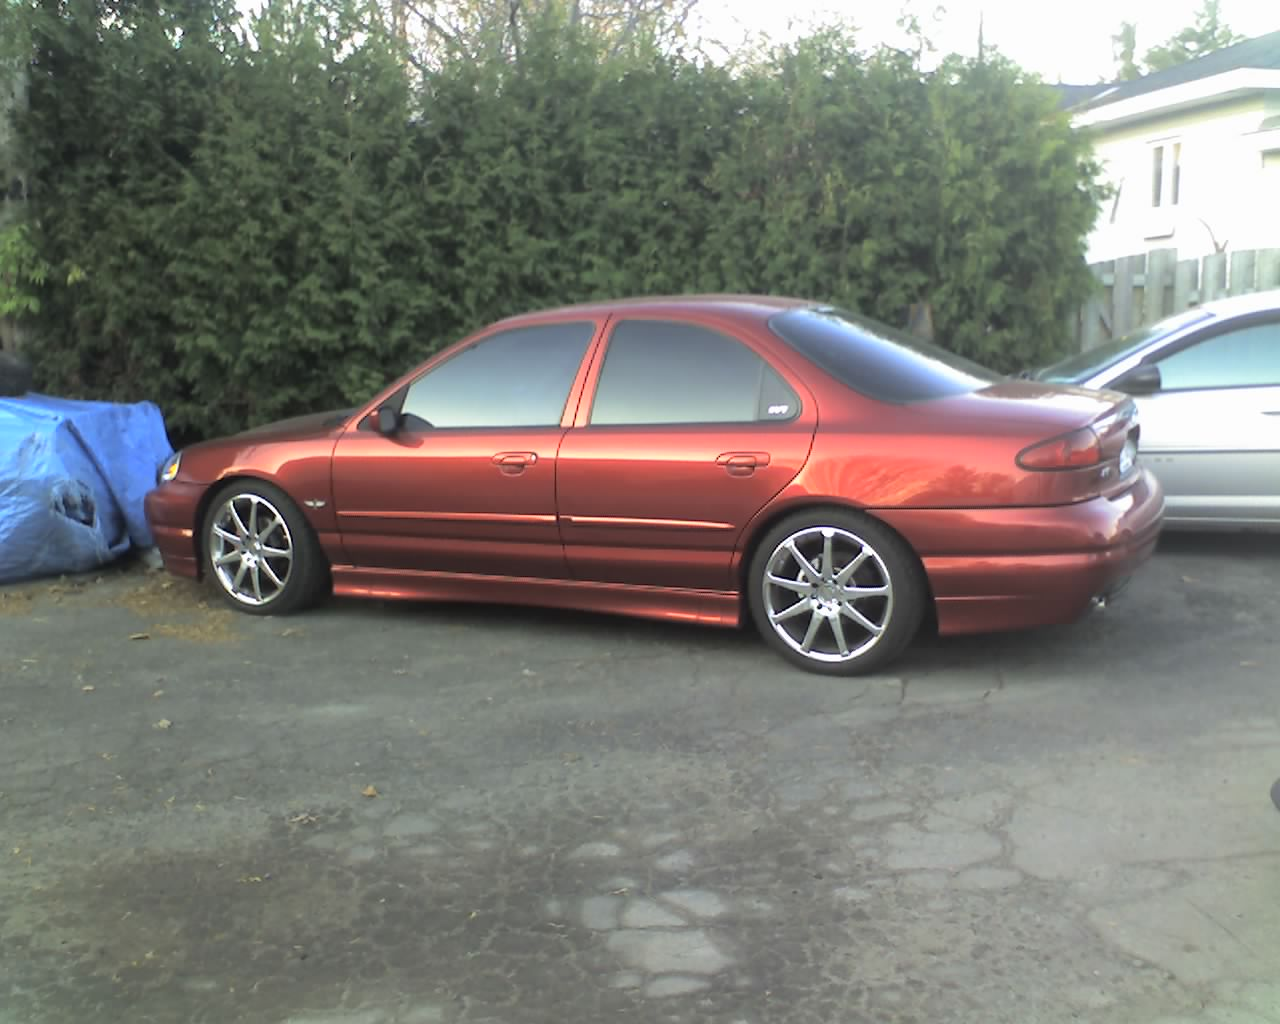 1999 Ford Contour Svt Pictures to Pin on Pinterest - PinsDaddy